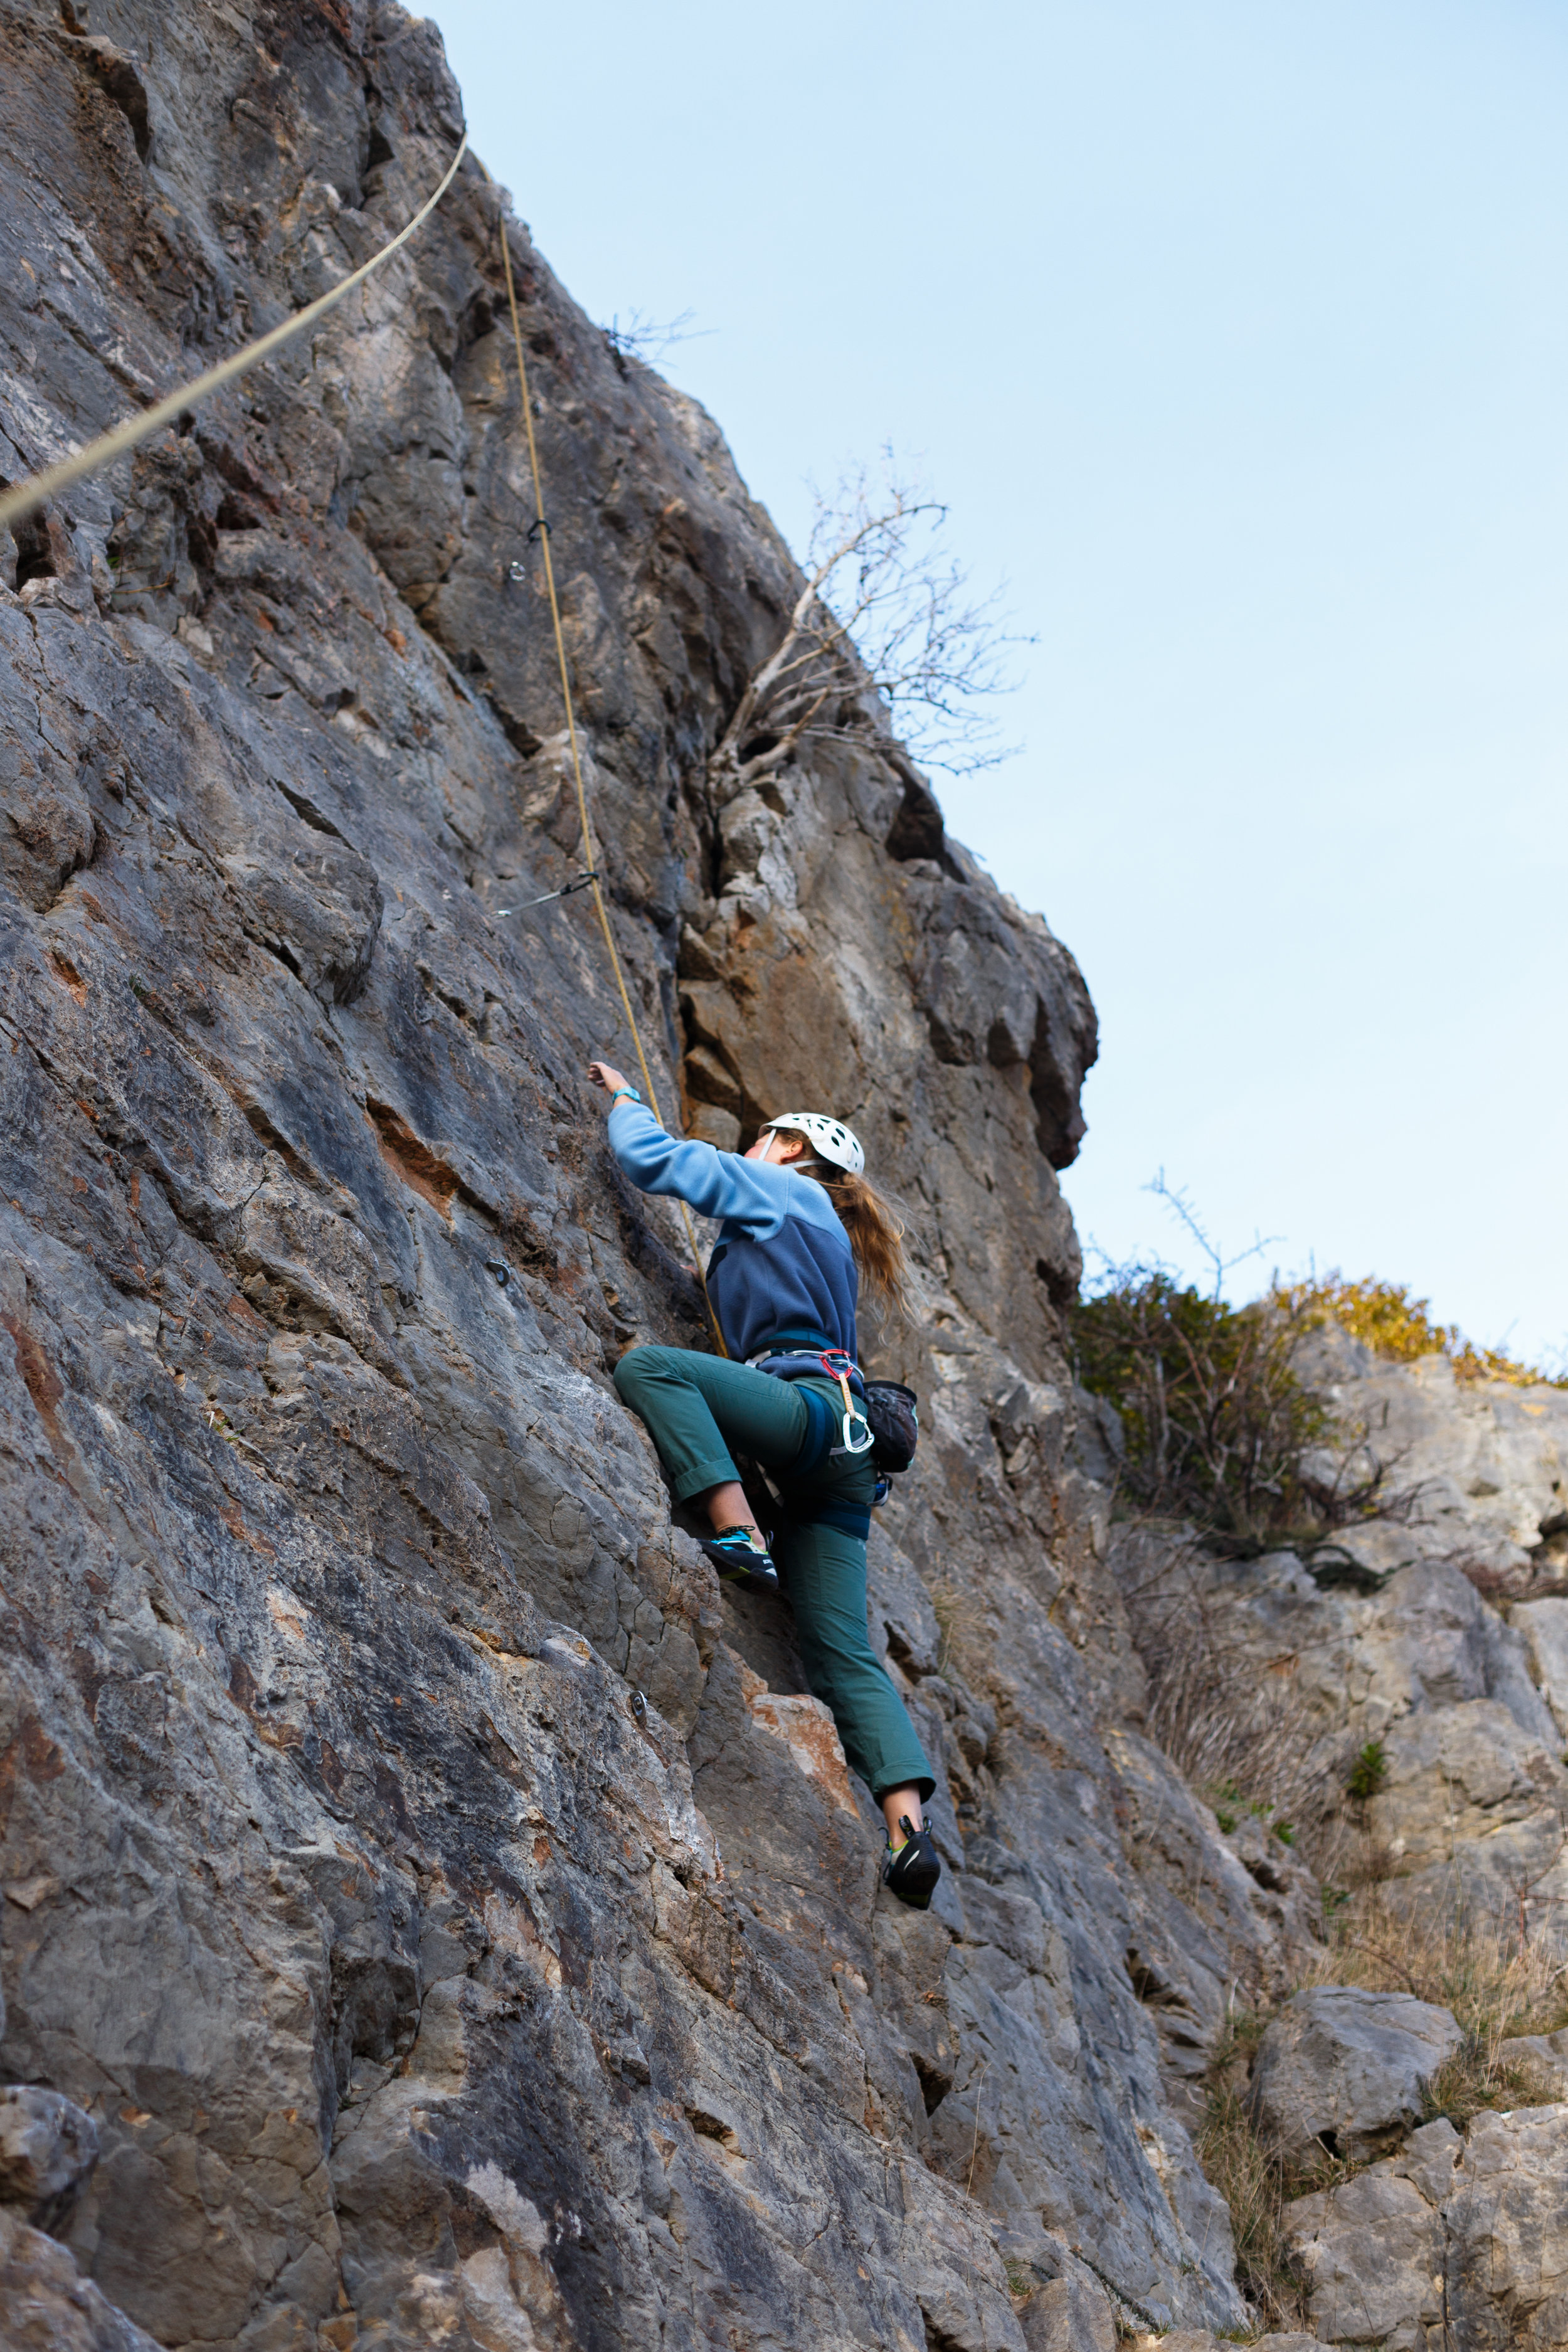 My first outdoor climbing experience in Wales